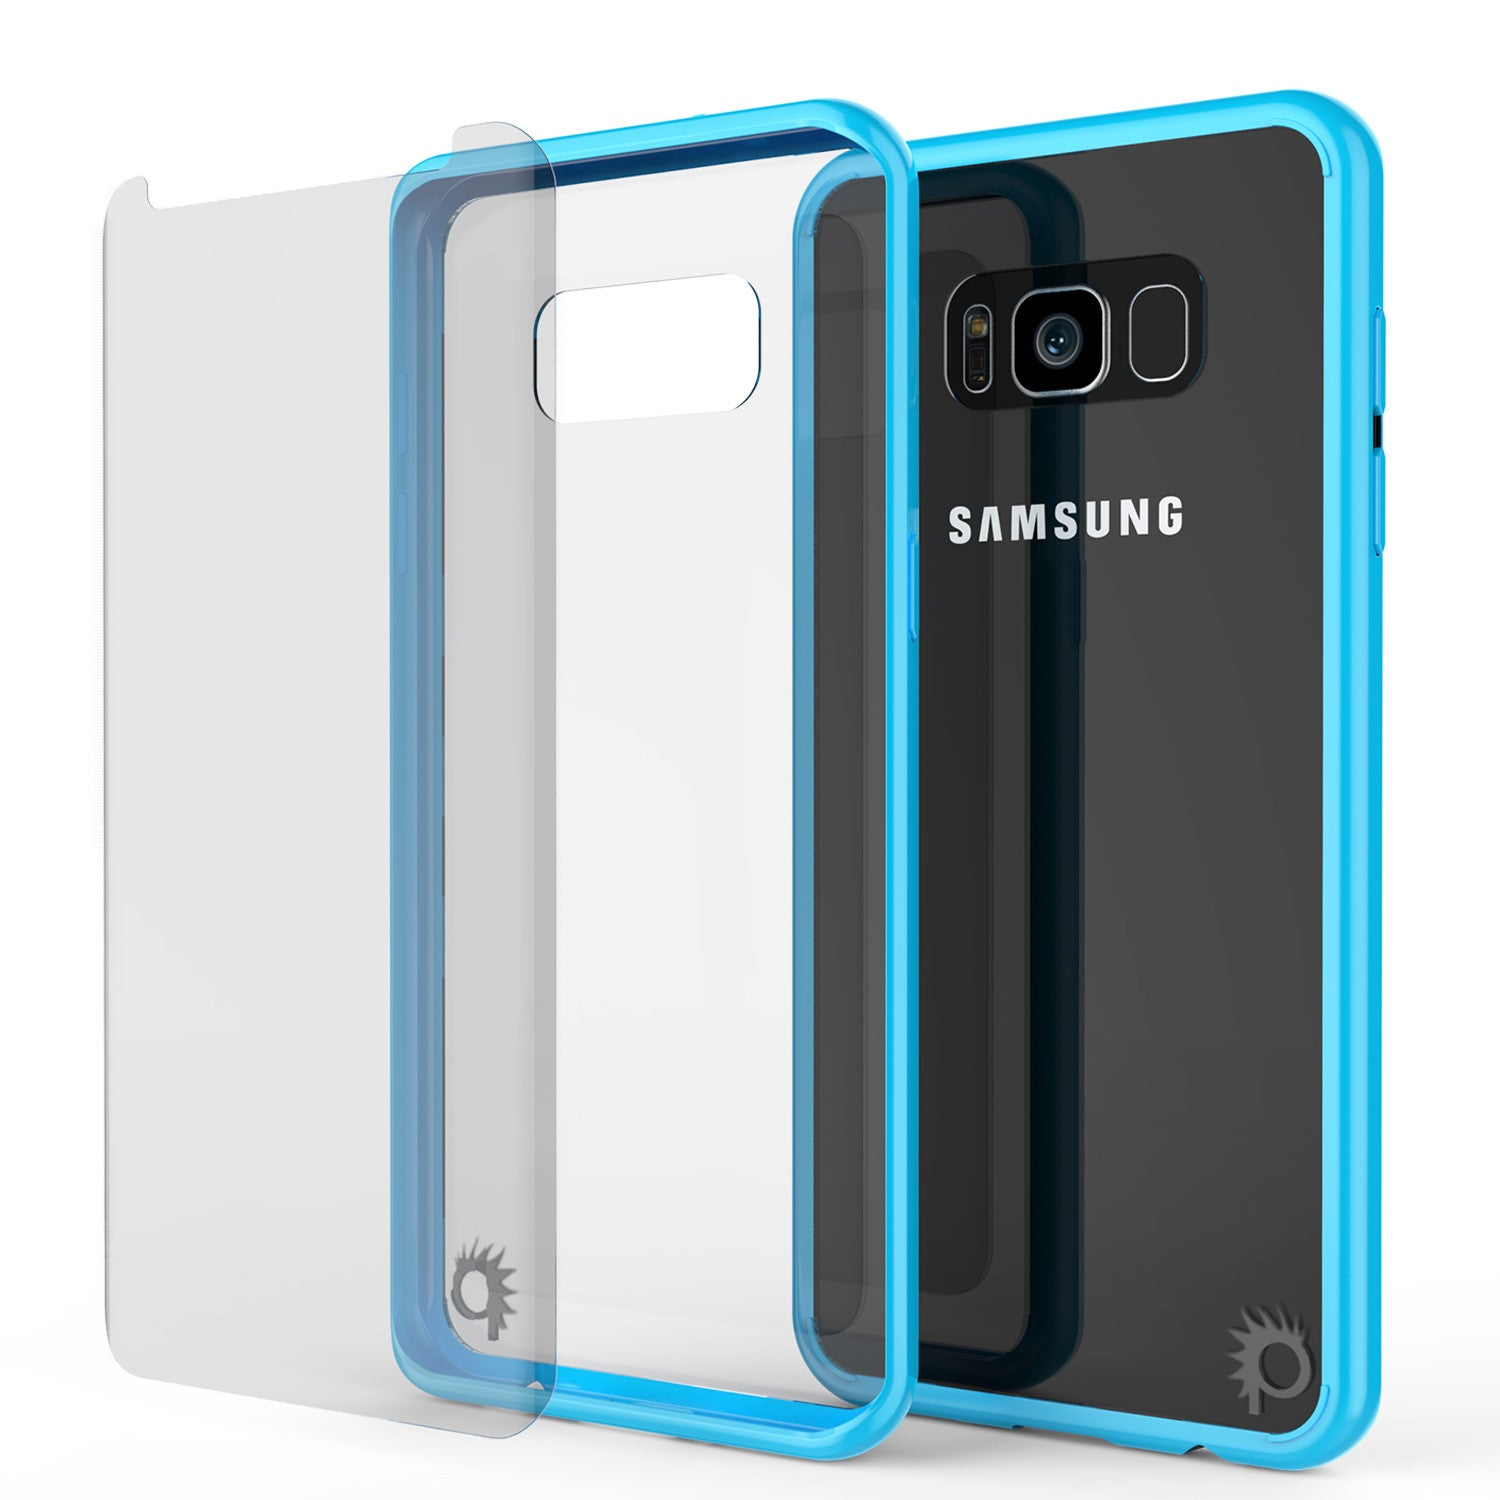 S8 Plus Case Punkcase® LUCID 2.0 Light Blue Series w/ PUNK SHIELD Screen Protector | Ultra Fit